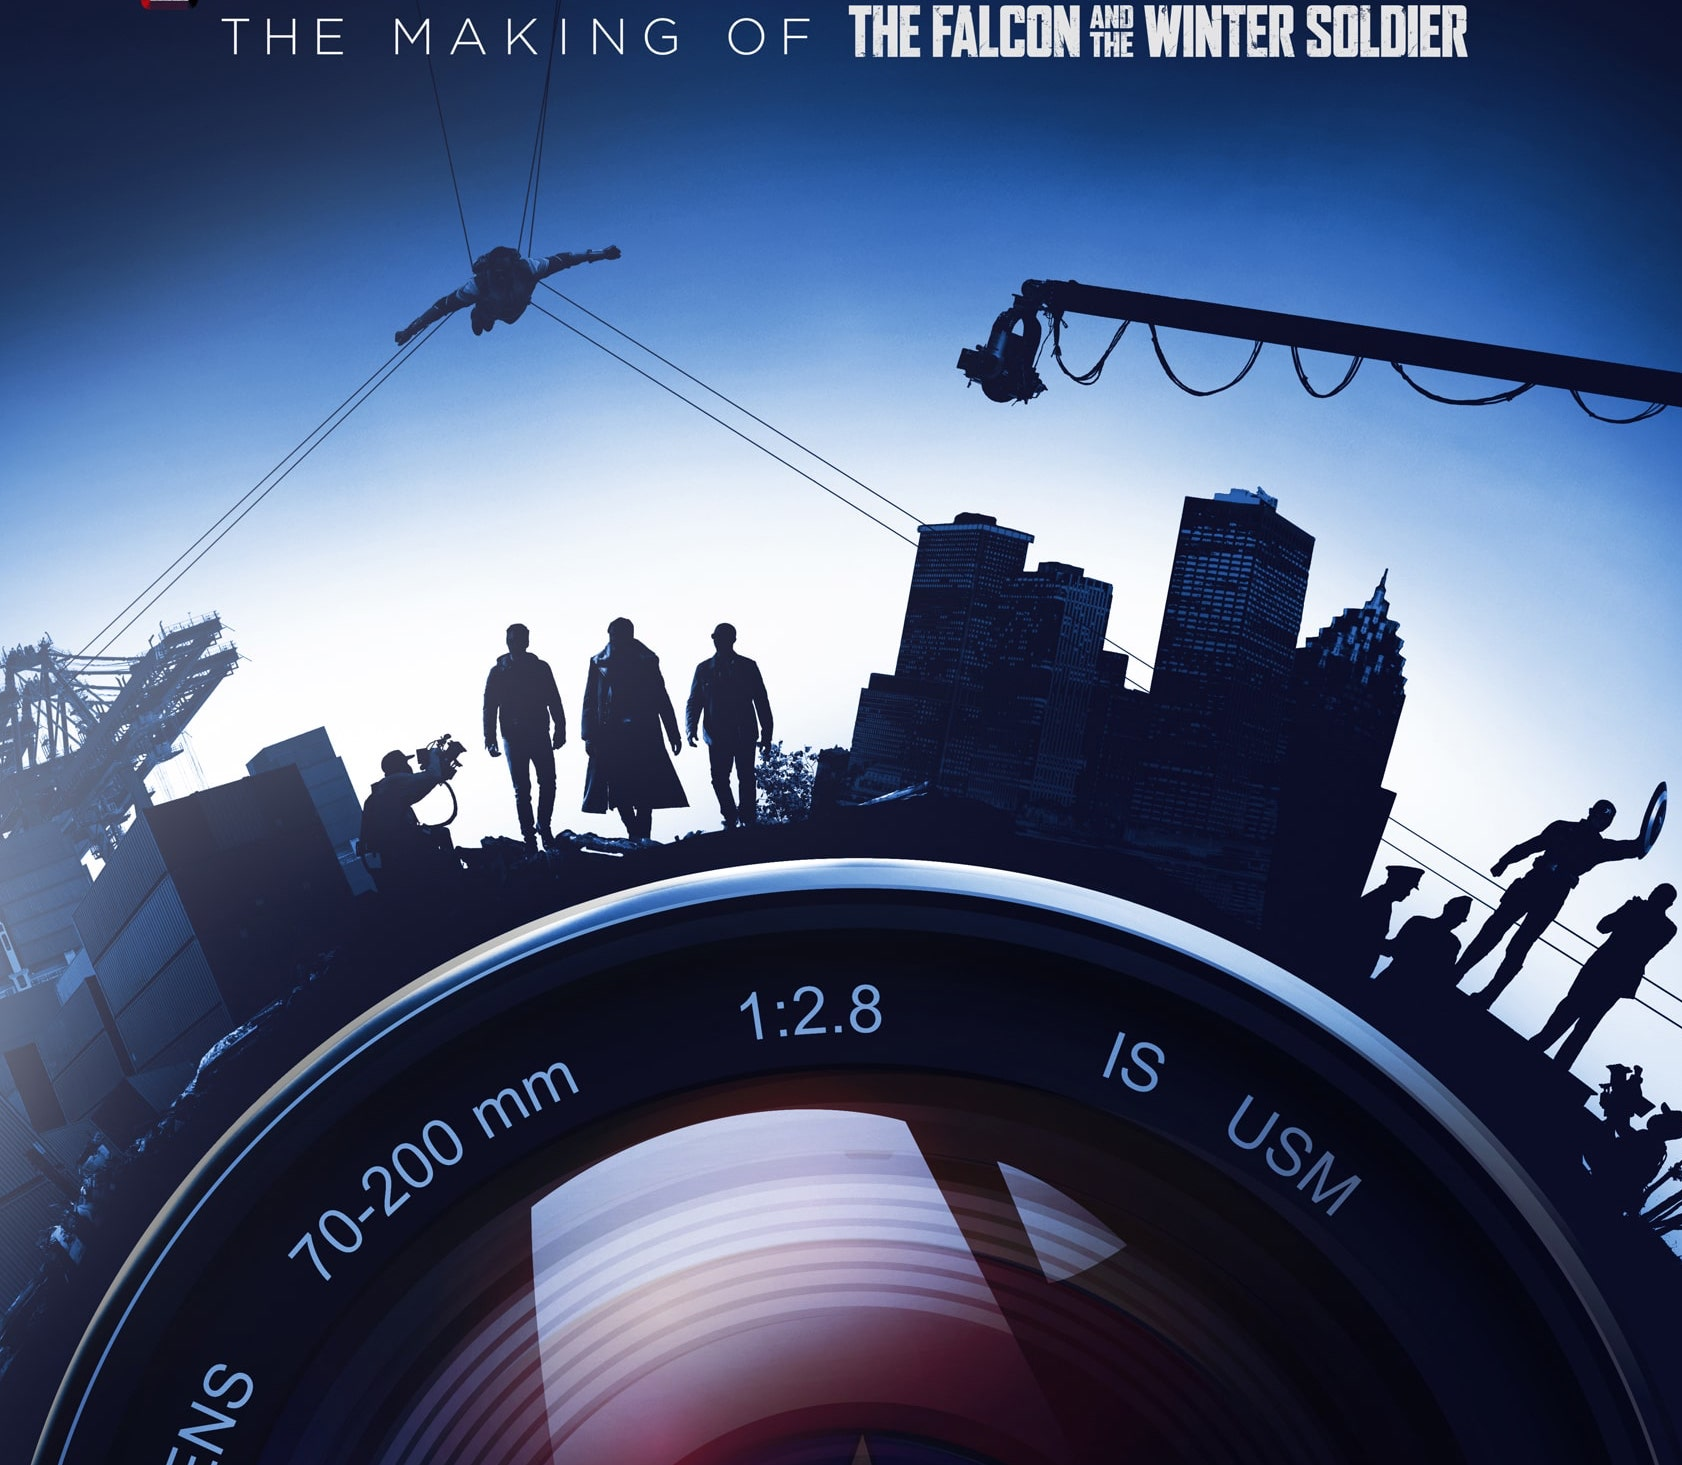 Disney+ releases trailer for docu 'Assembled: The Making of The Falcon and The Winter Soldier'